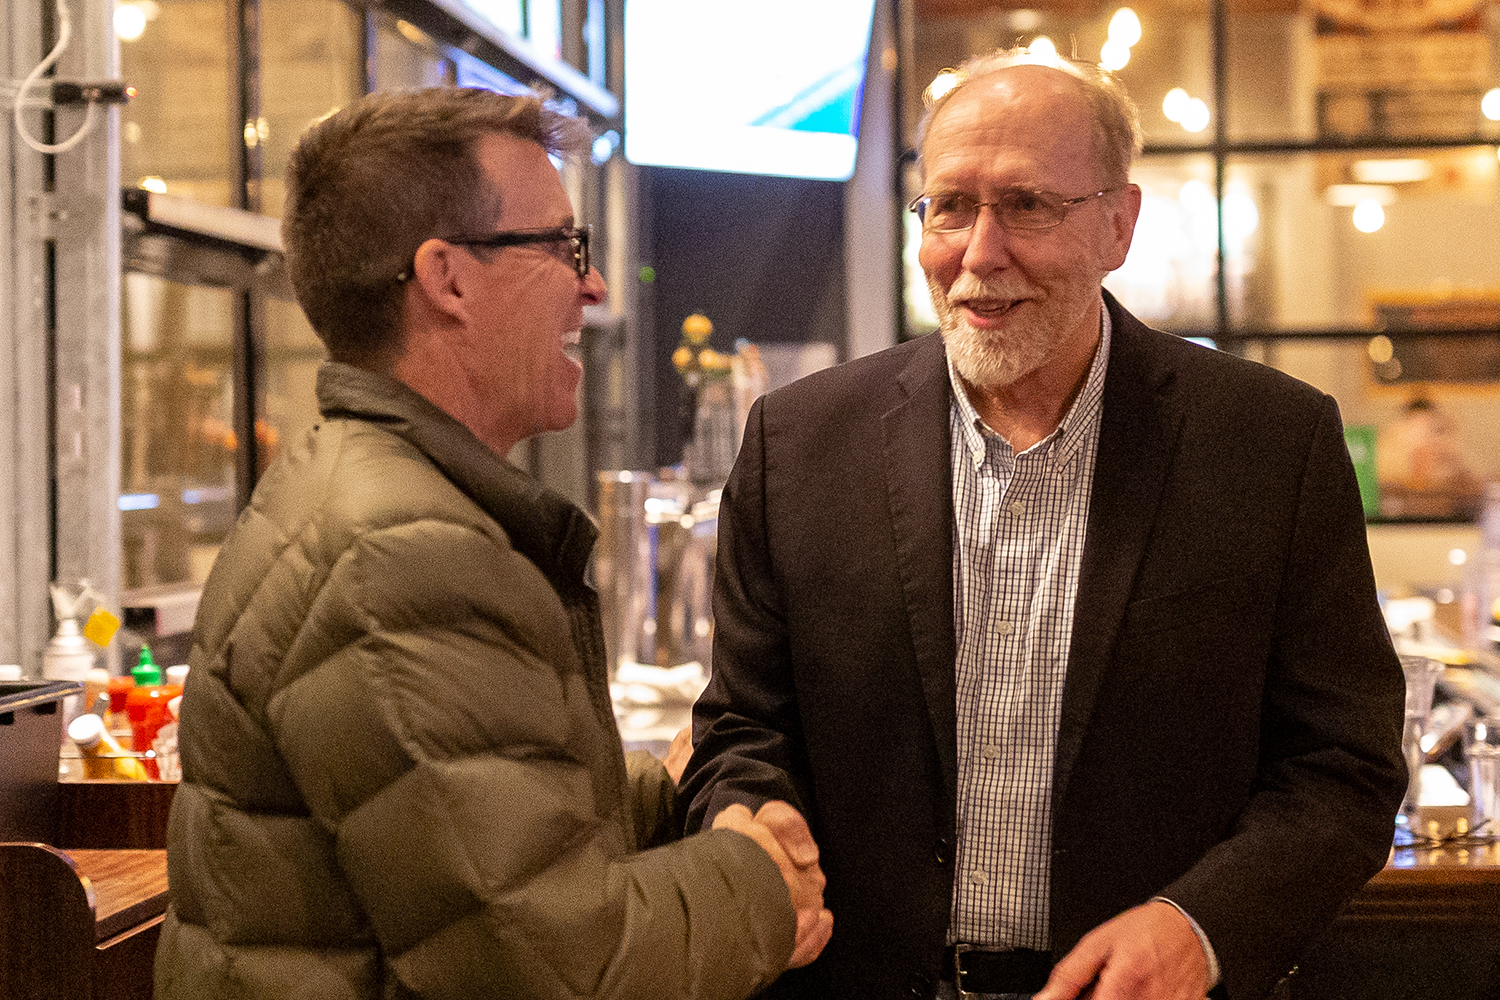 Congressman Dave Loebsack (D-IA) (center) shakes hands with Iowa State Senator Joe Bolkcom at an election night watch party at Big Grove Brewery in Iowa City on Tuesday, Nov. 6, 2018. (David Harmantas/The Daily Iowan)